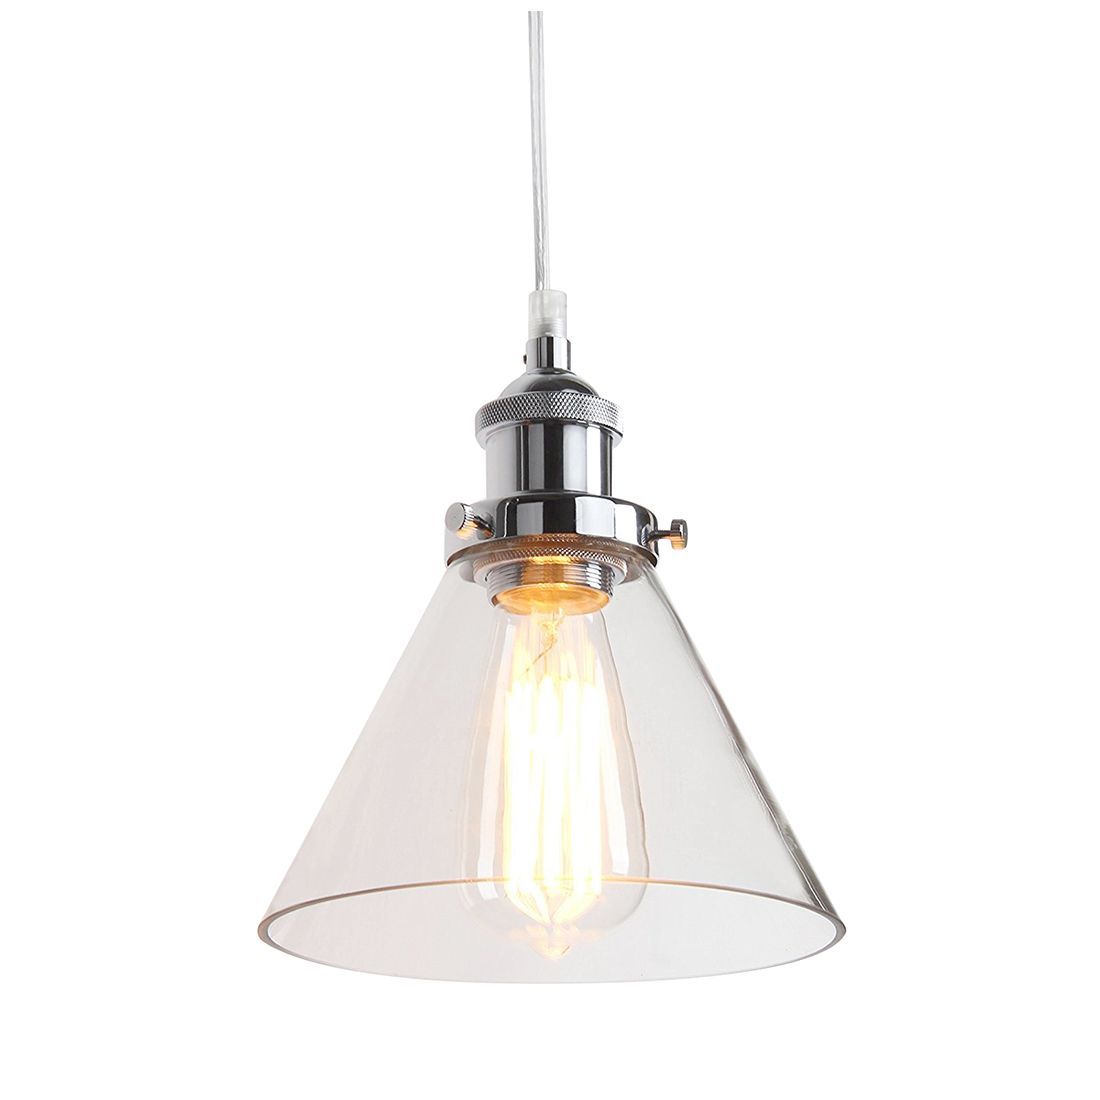 Industrial Vintage Stainless steel head 1 Light Iron Body Glass Shade Loft Coffee Bar Kitchen Hanging Pendant Lamp vintage iron stainless steel pendant lamp modern silver stainless steel pendant light free shipping